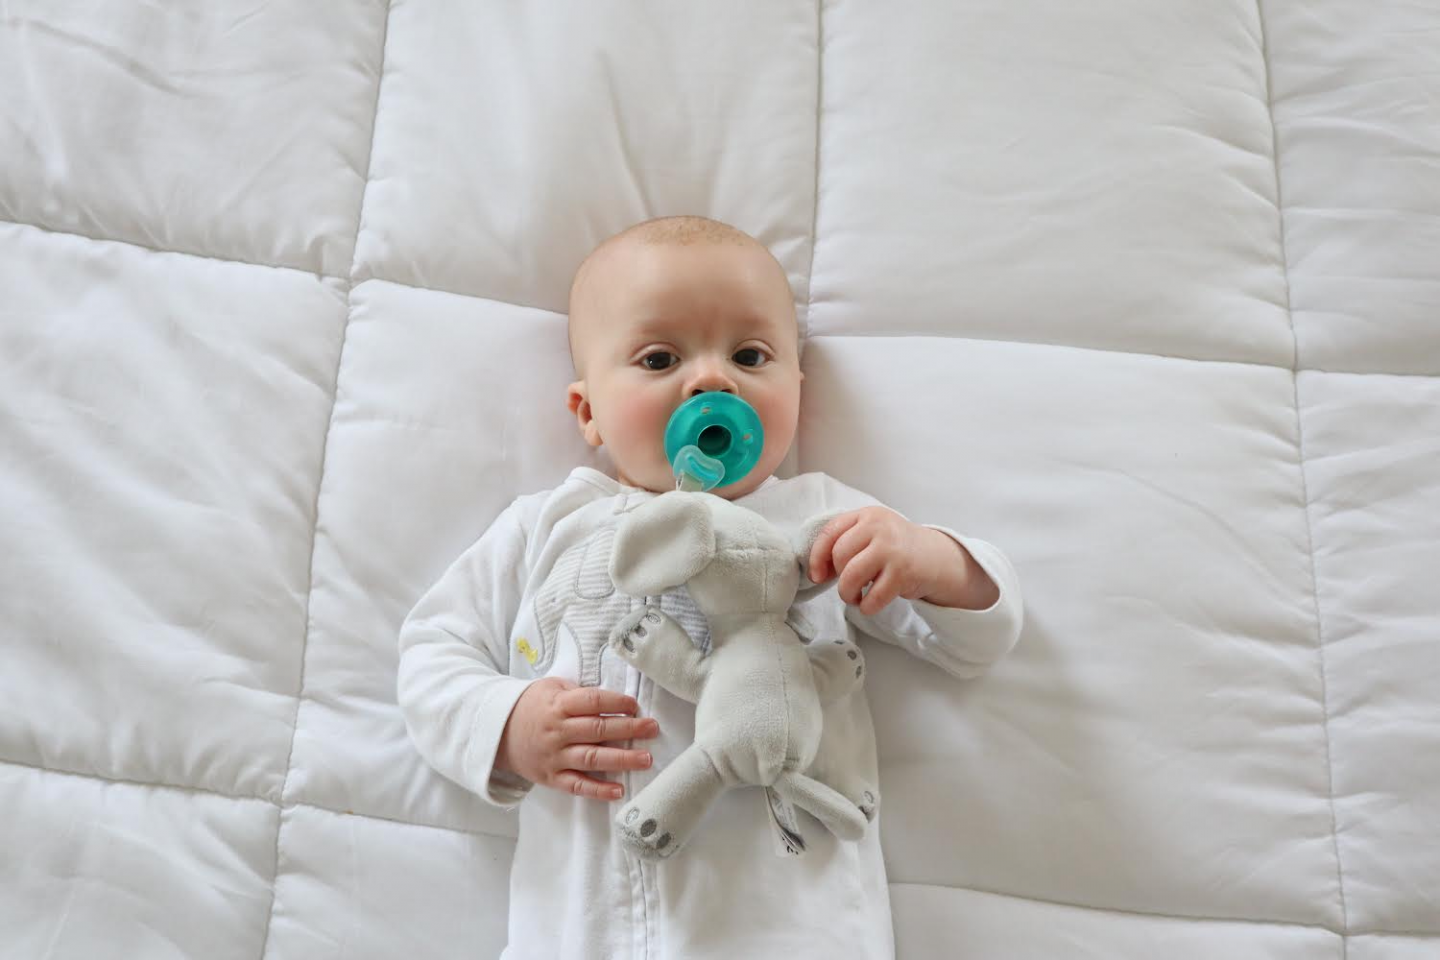 The Philips Avent Soothie Snuggle